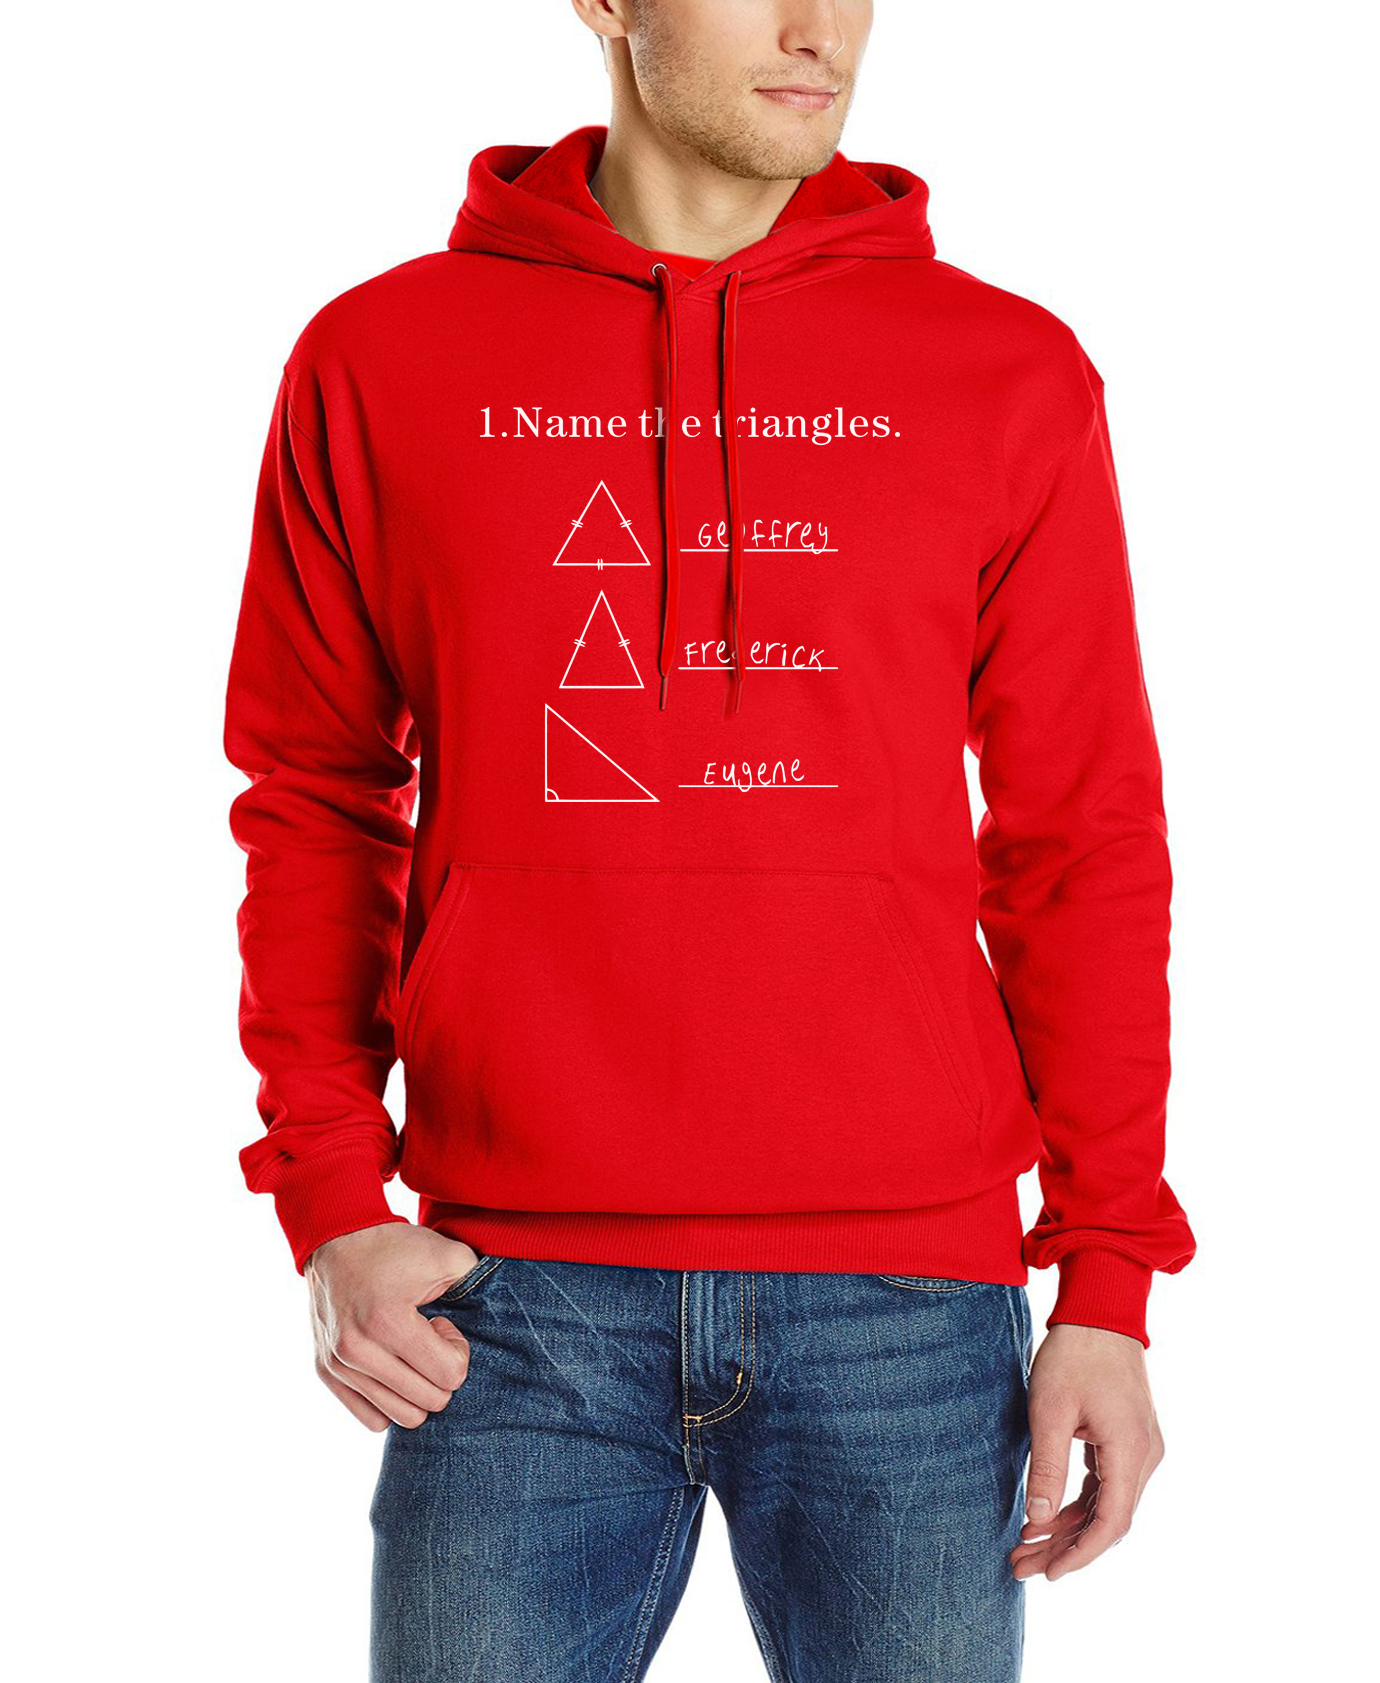 Mens jacket names - 2017 New Style Autumn Fashion Brand Clothing Mens Name The Triangles Sweatshirt Funny Math Triangle Long